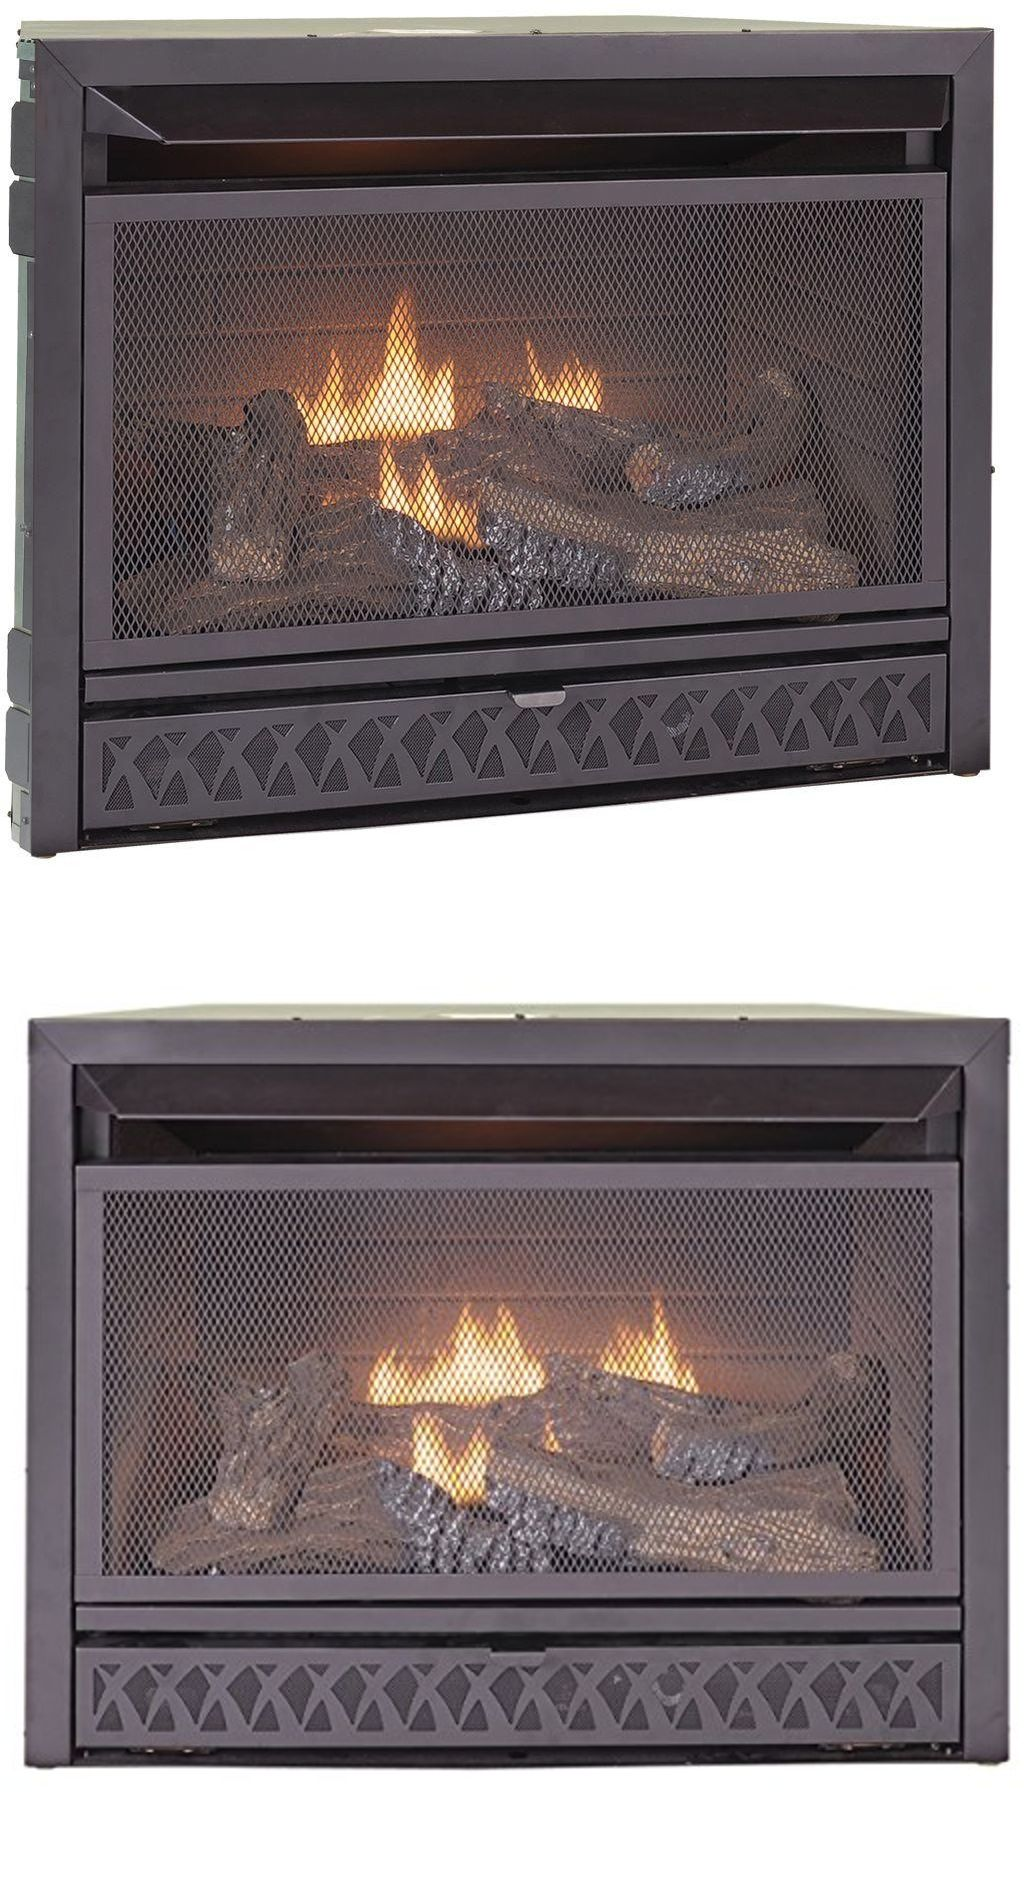 Thermostats for gas fireplace - Fireplaces 175756 29 In Propane Natural Gas Fireplace Insert Dual Fuel Vent Free